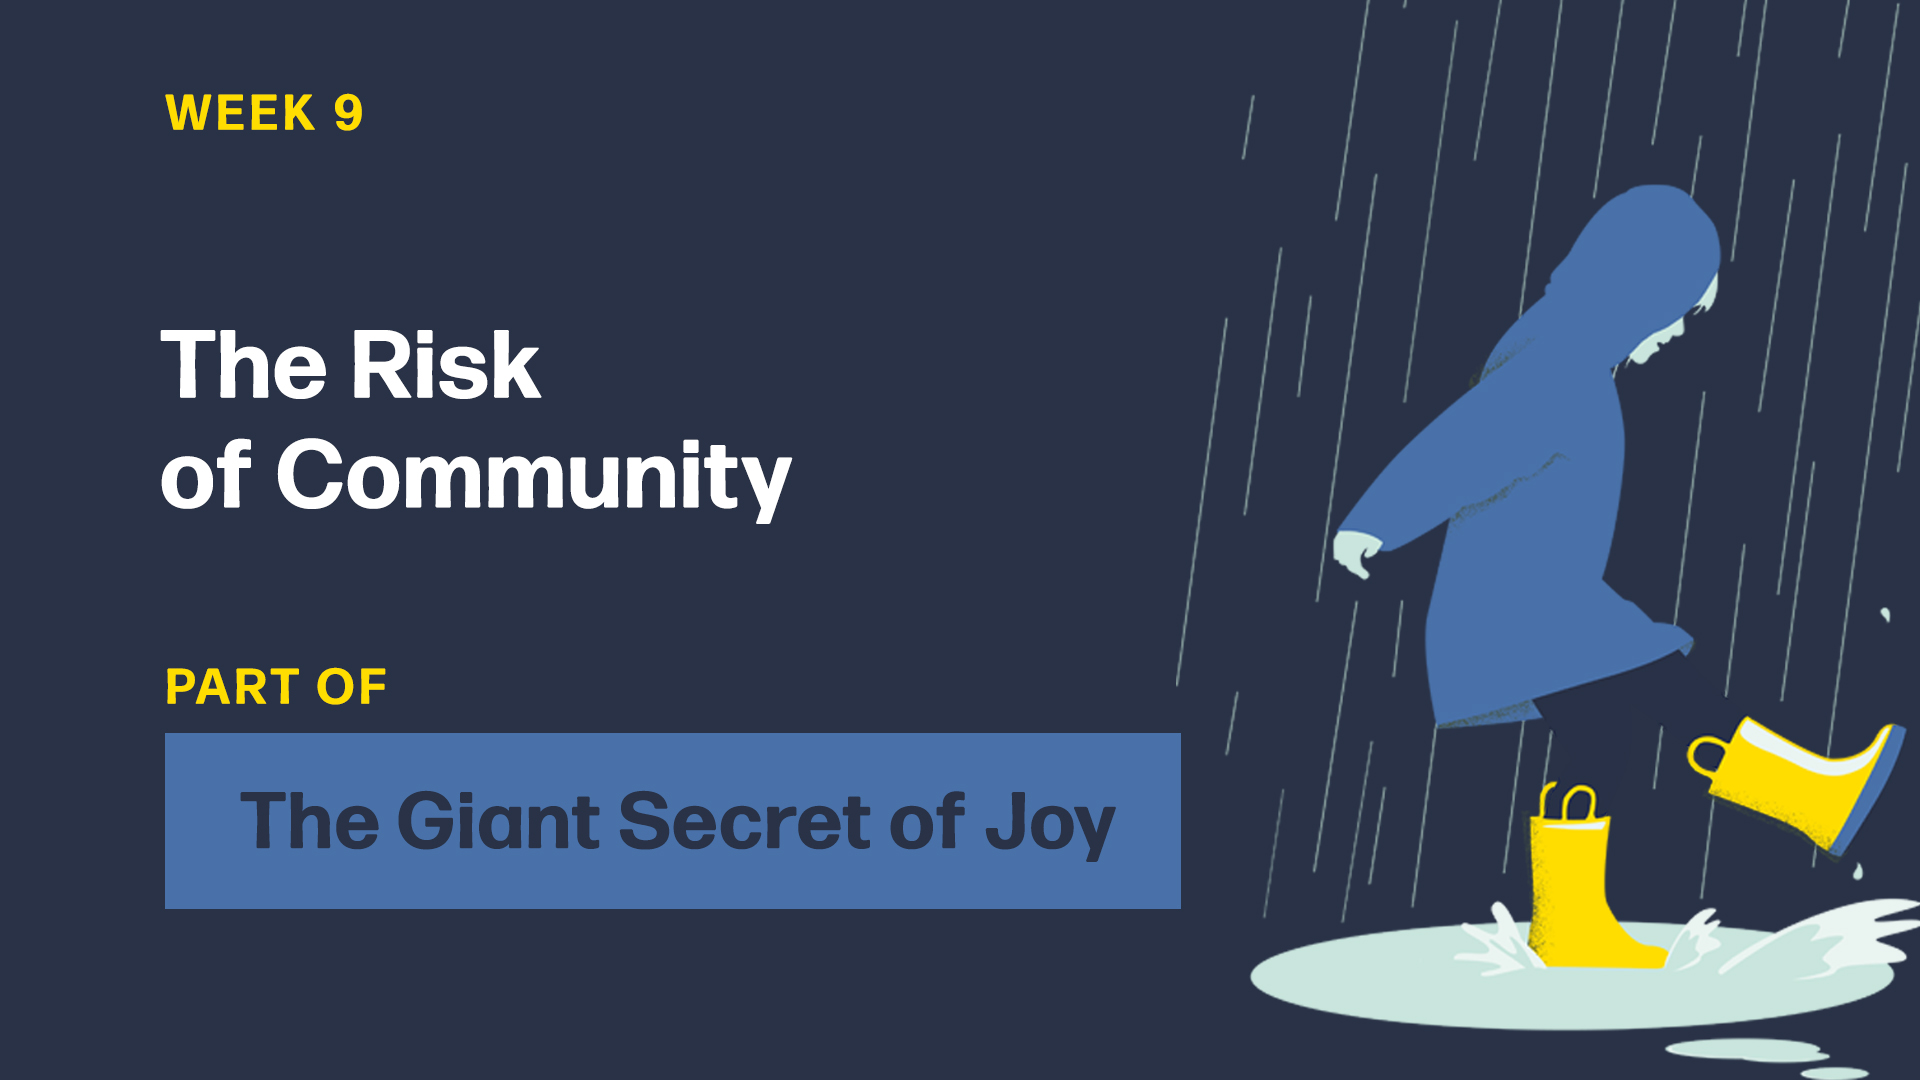 The Risk of Community